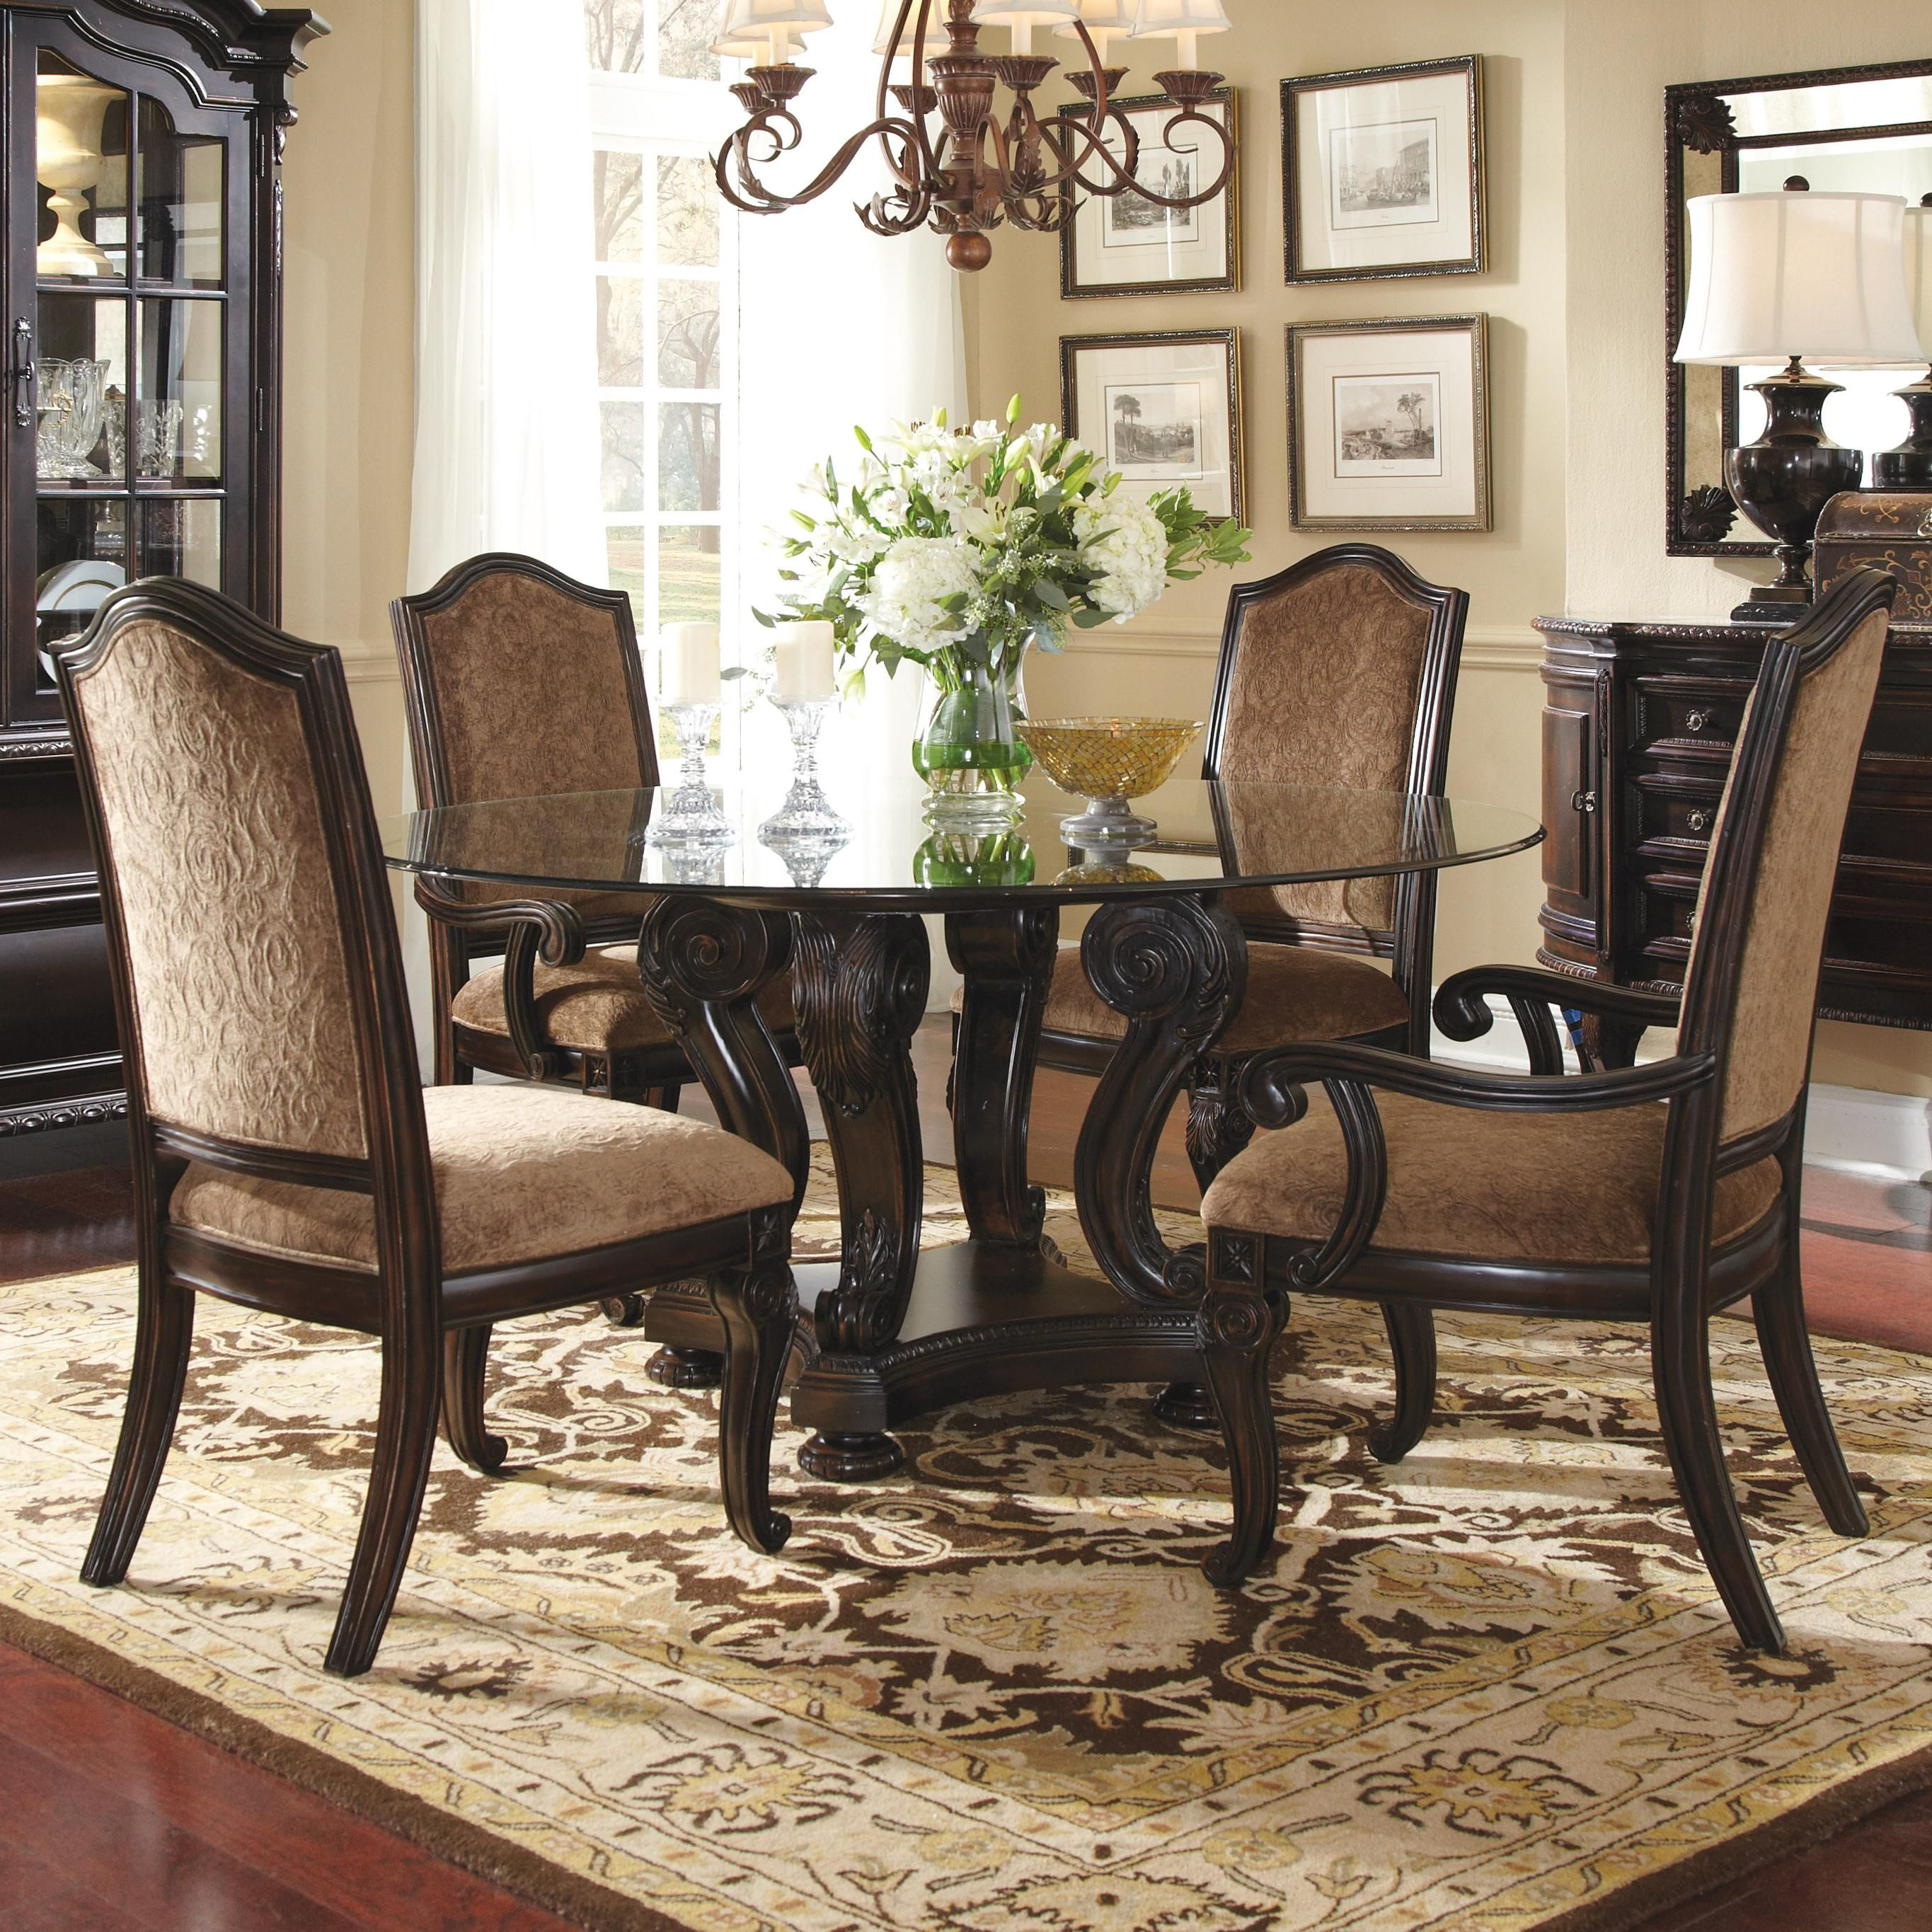 Flamboyant Top Round Table Dining Room Sets Making The House Enjoyable